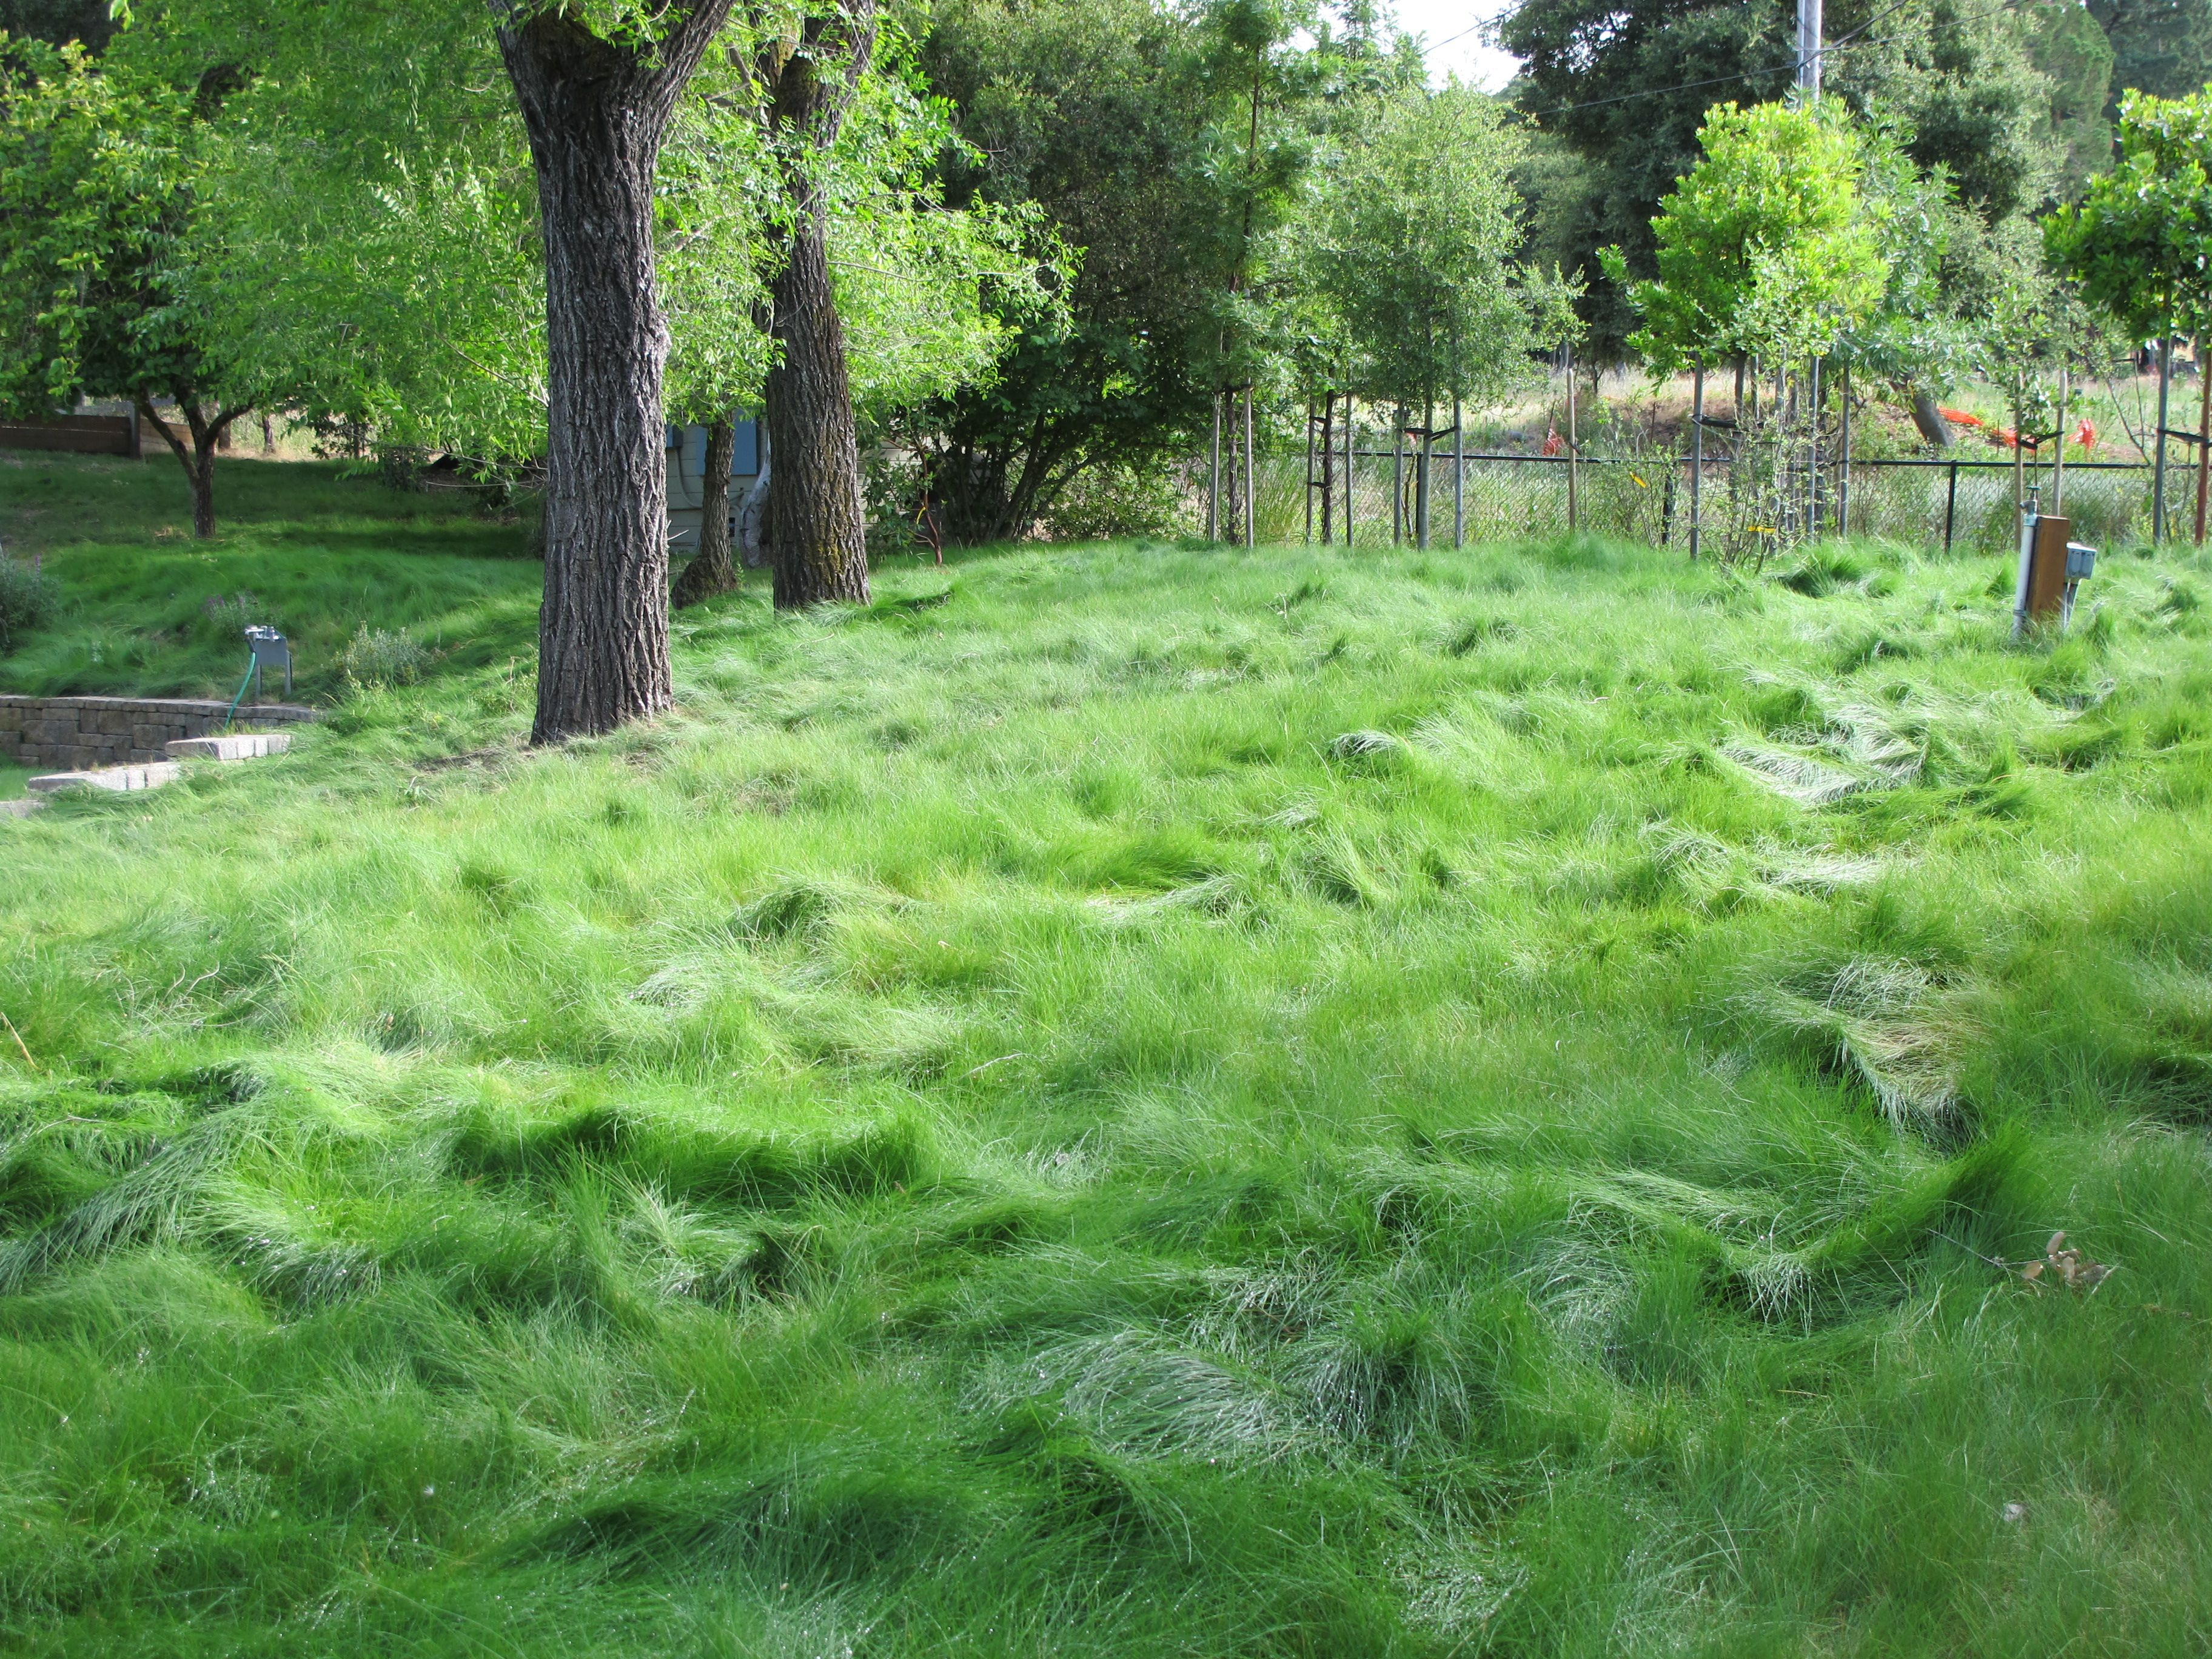 5 Low-Water Lawns That Stay Green Under Pressure